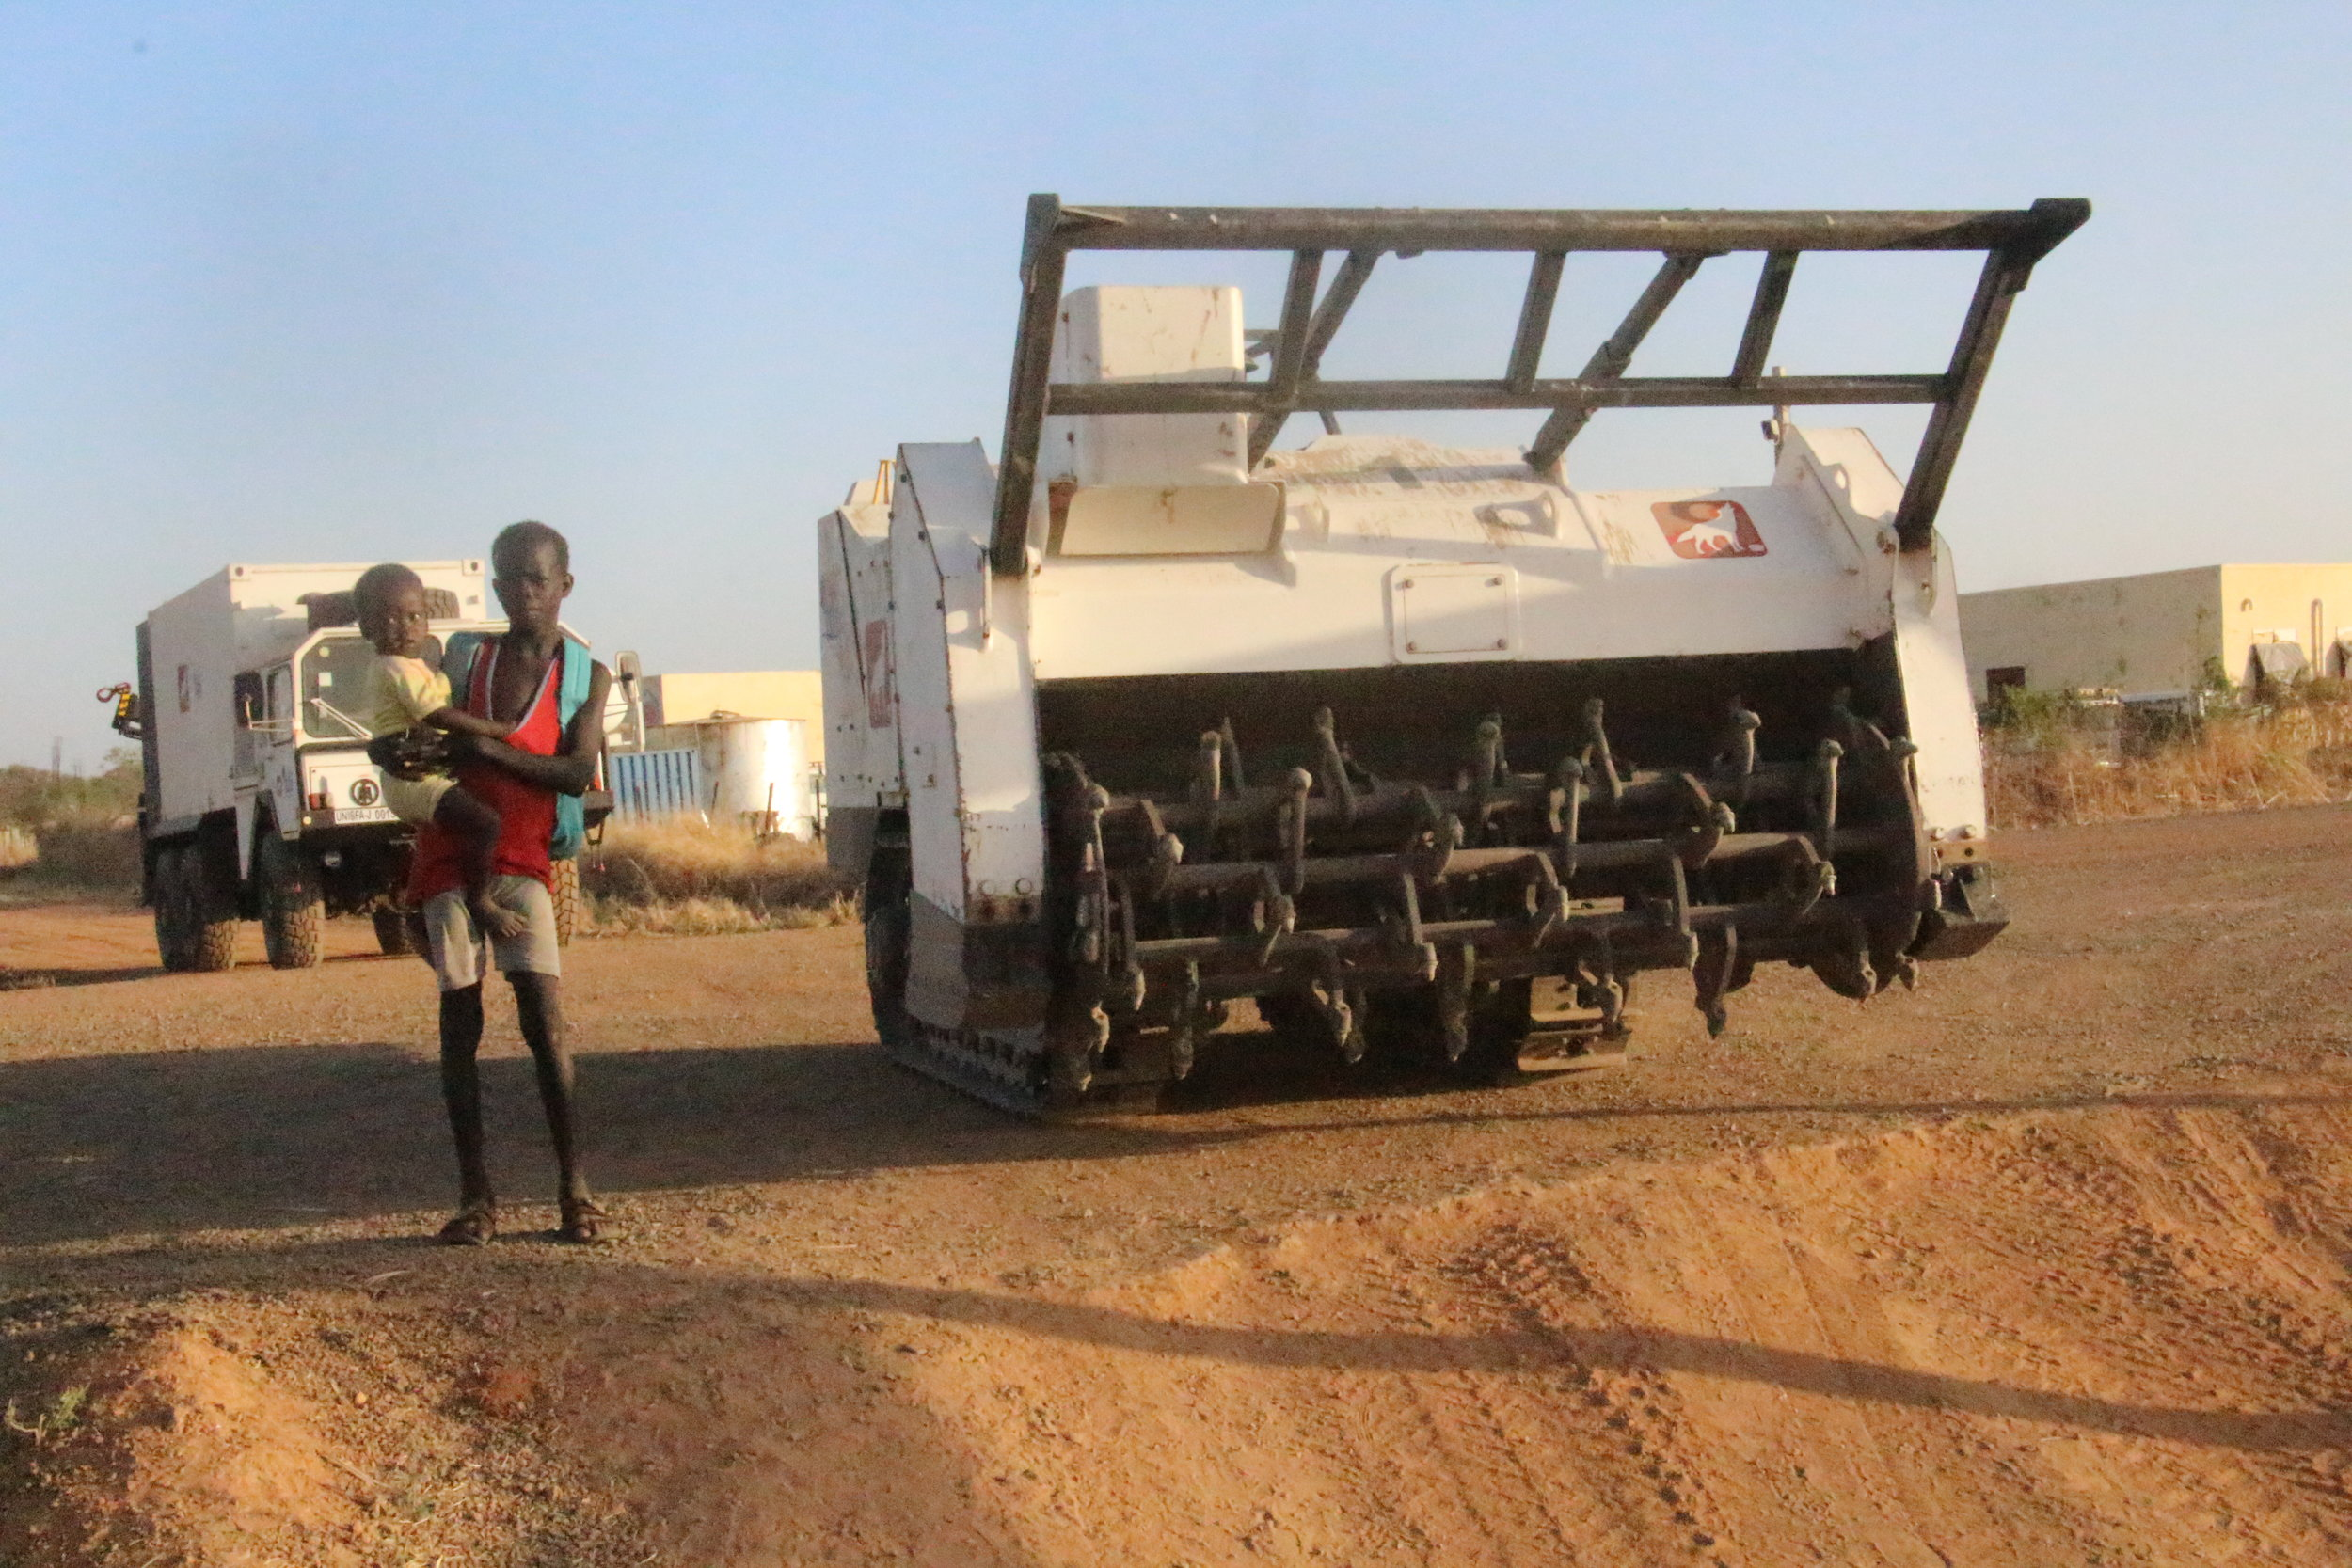 GCS mainained vehicle as part of a mine clearing team in Sudan